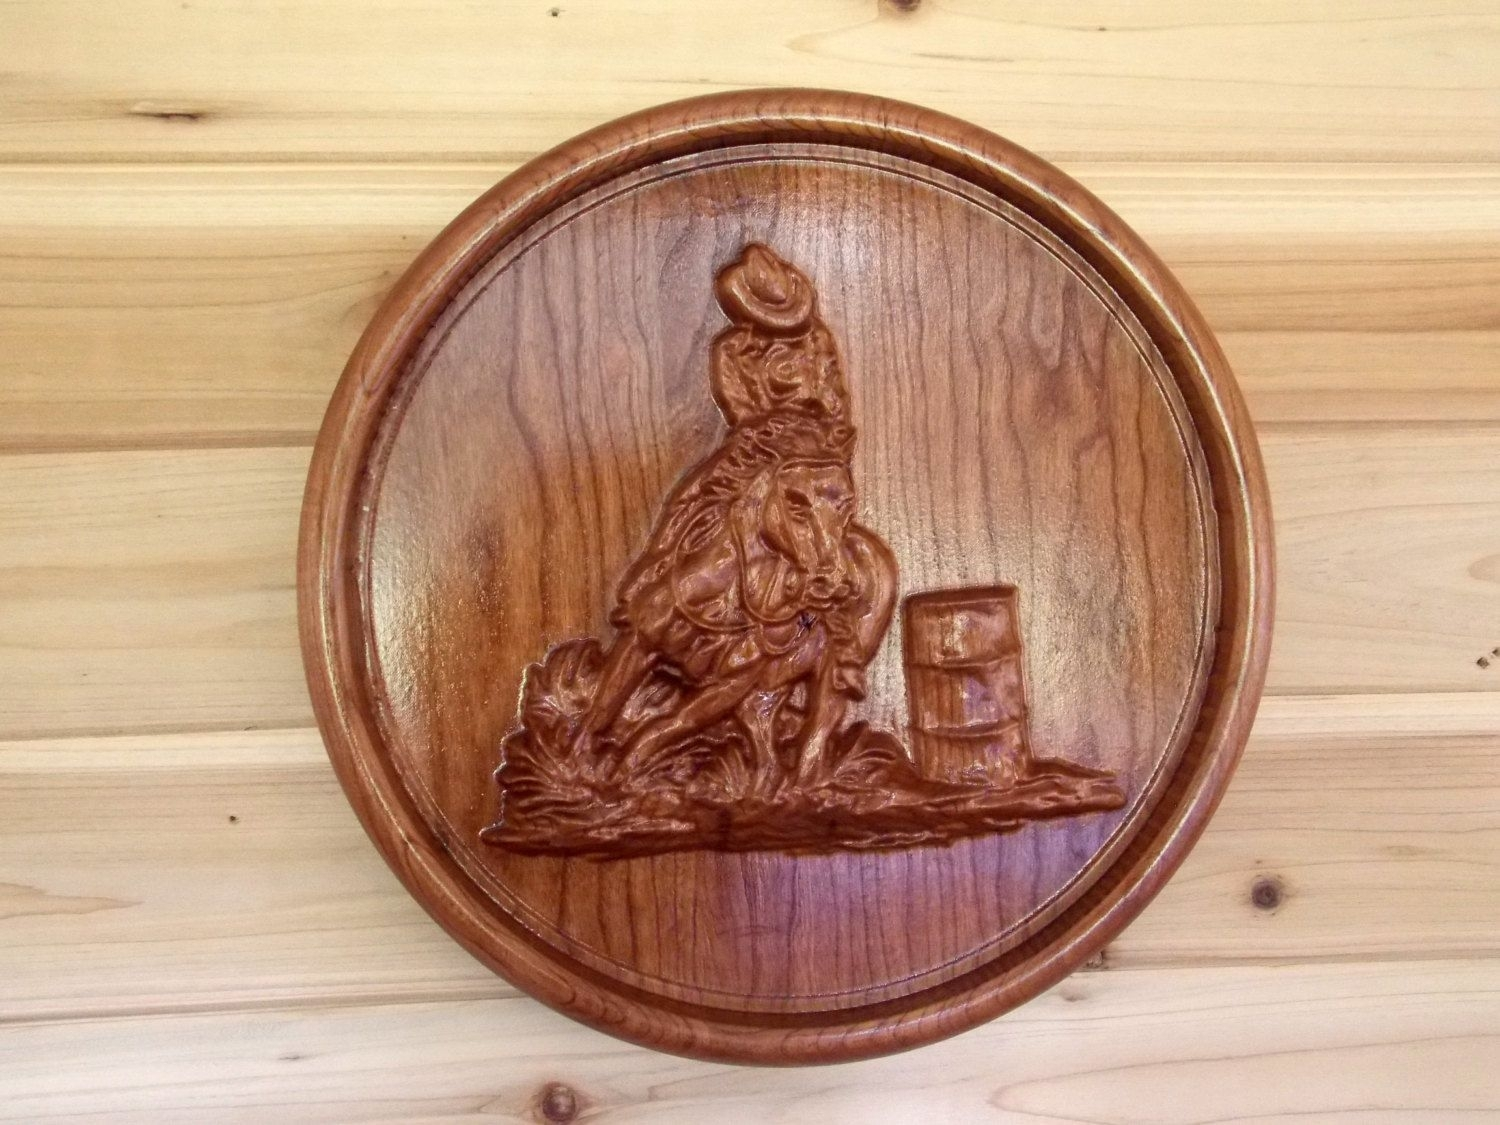 Barrel Racing Cowboy – Wood Carving Wall Hanging – Western Wall Pertaining To Recent Western Wall Art (View 3 of 20)